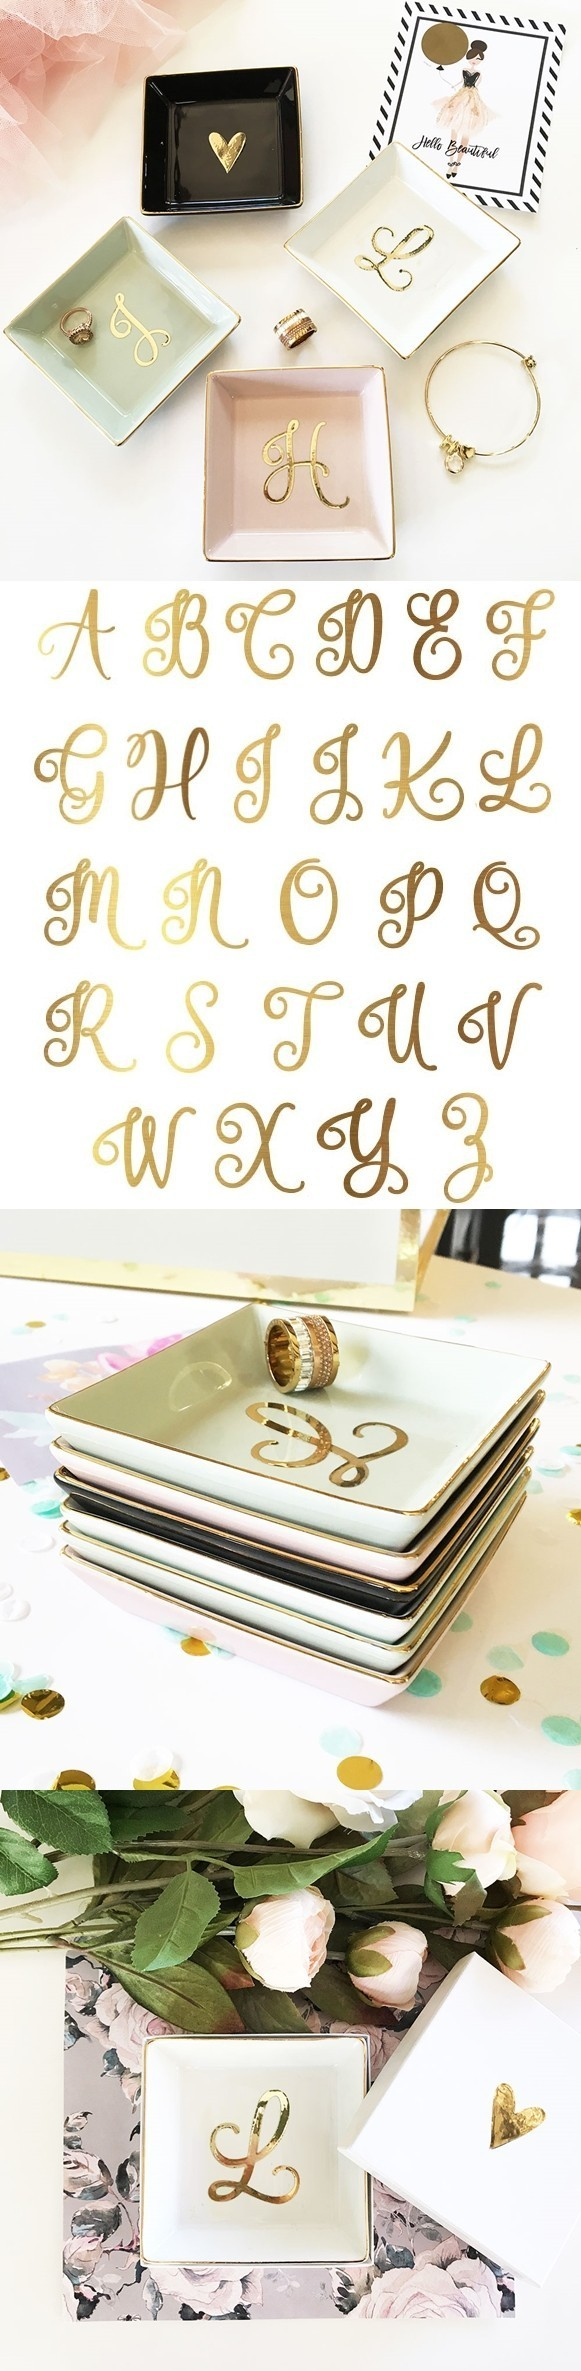 Event Blossom Ceramic Ring Dish with Gold Script Monogram (4 Colors)